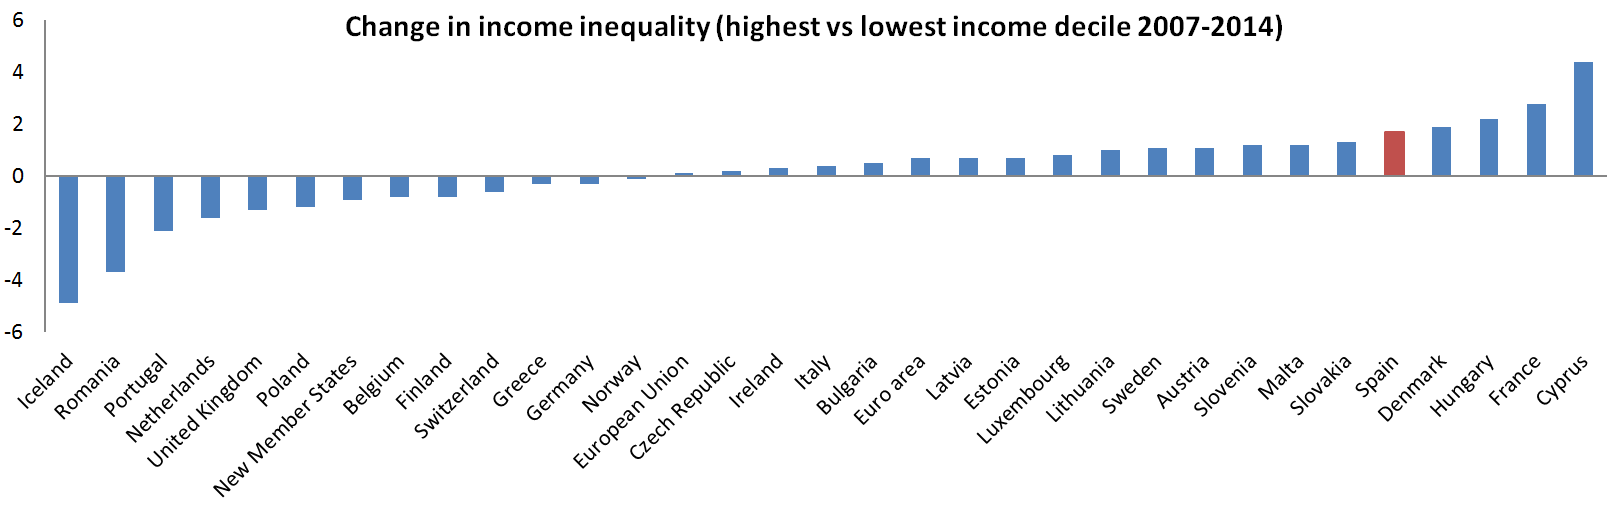 Change in income inequality